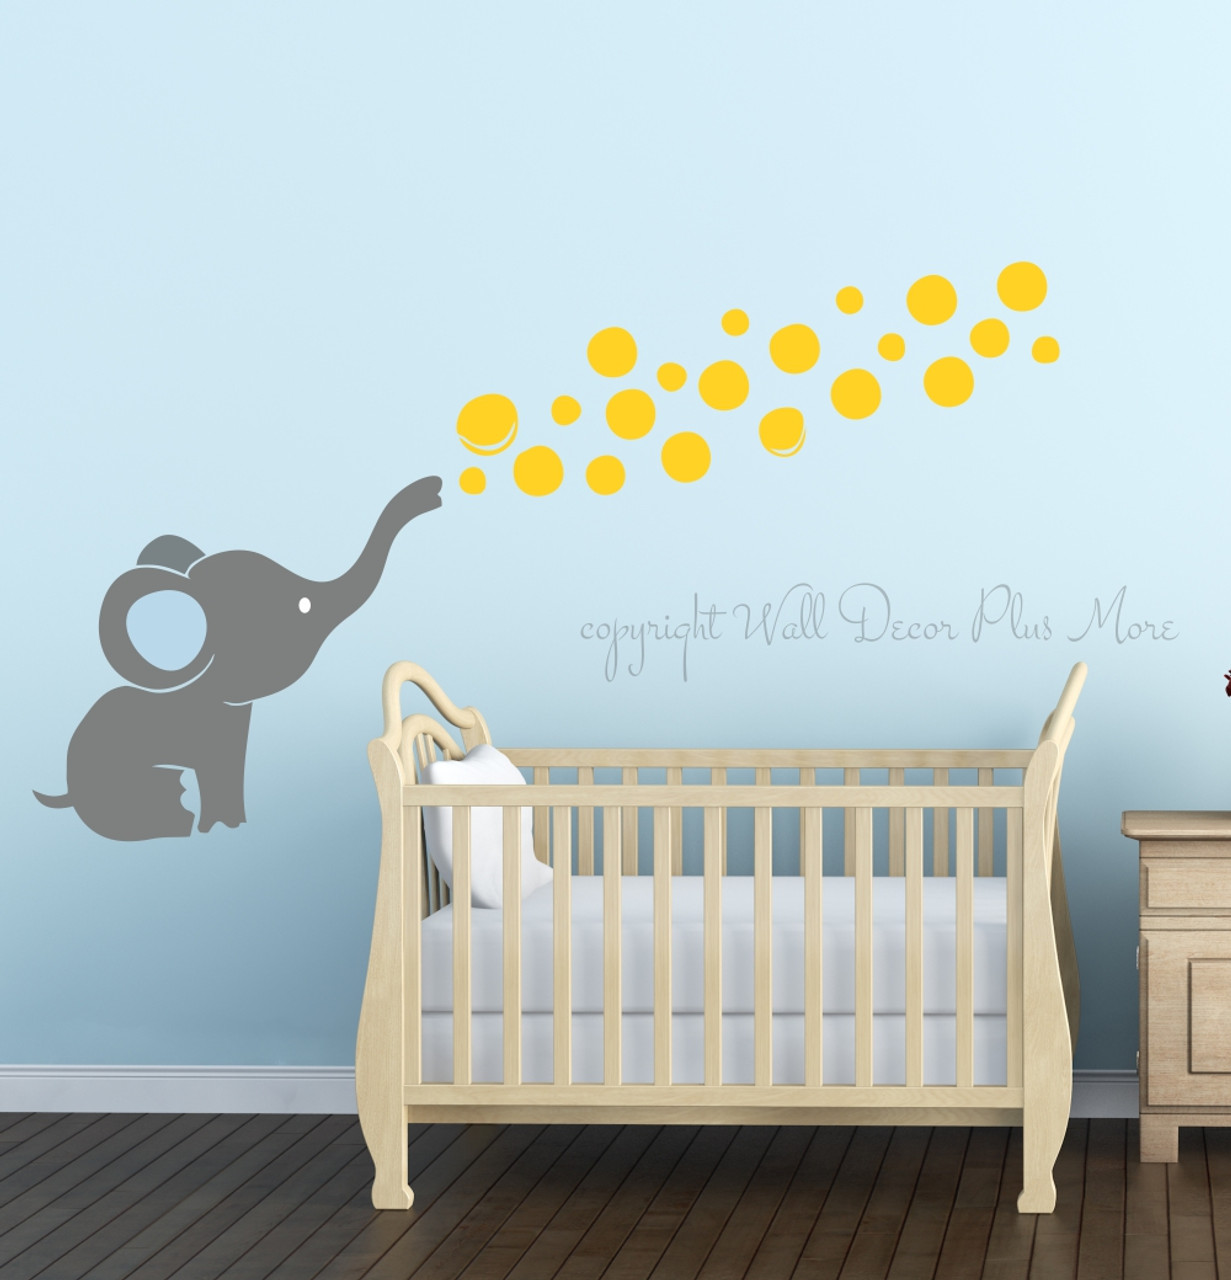 11 Cool Baby Nursery Design Ideas From Vertbaudet: Elephant Wall Decal With Floating Bubbles, Cool Nursery